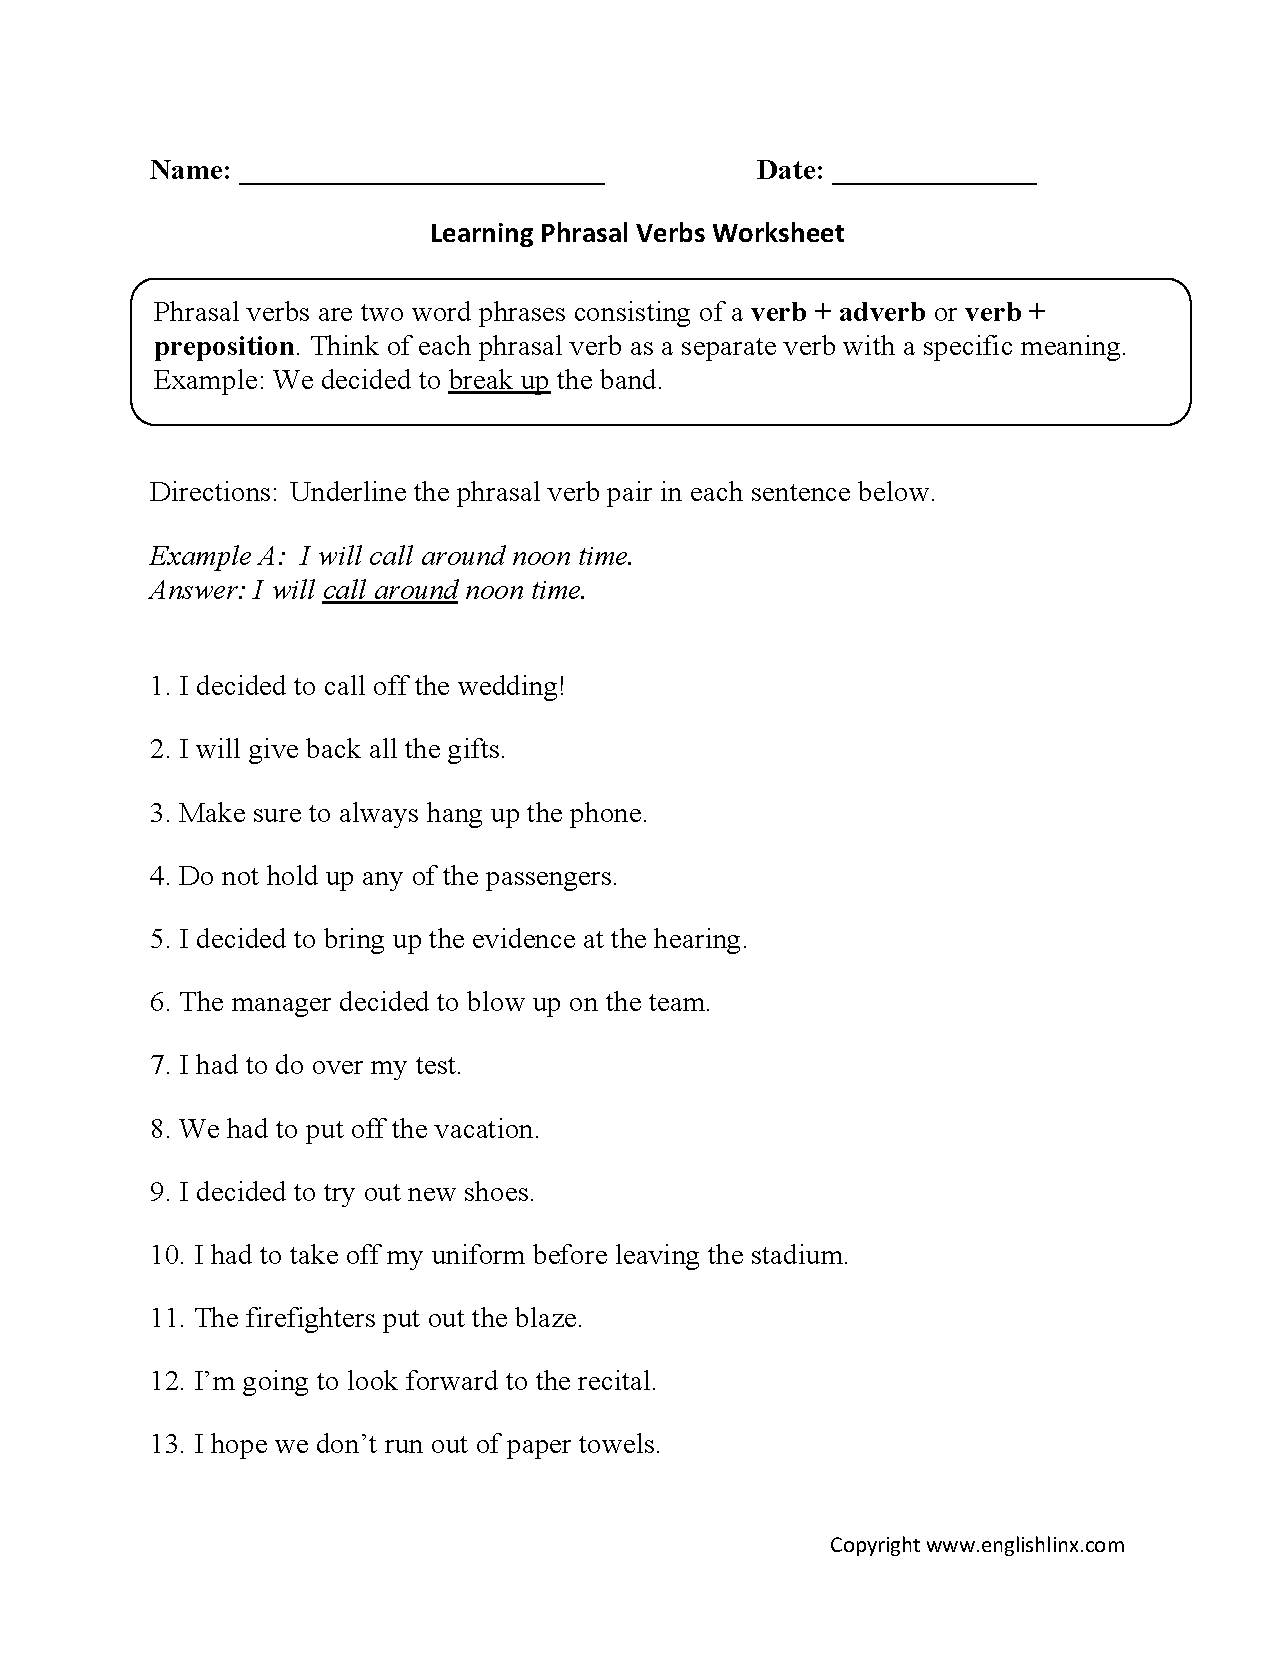 Worksheet Verbs Worksheet englishlinx com verbs worksheets phrasal worksheets